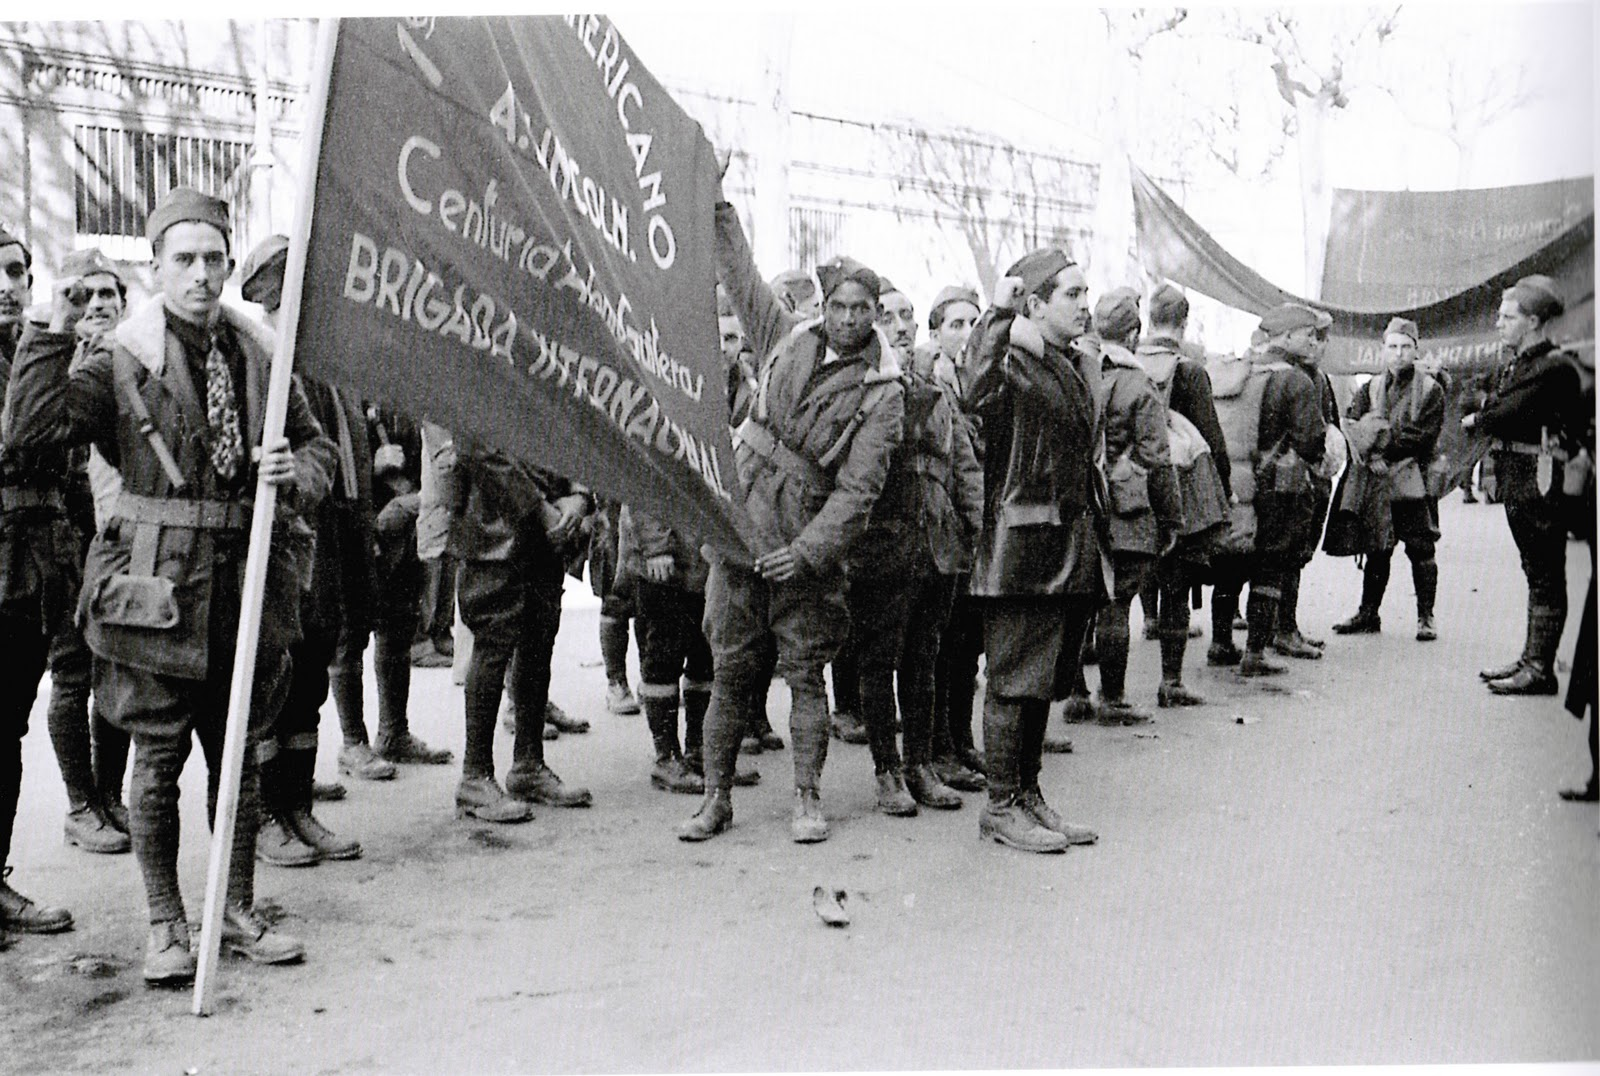 Cuban volunteers belonging to the Abraham Lincoln Brigade. Barcelona, January 1937. Photo Agustí Centelles.